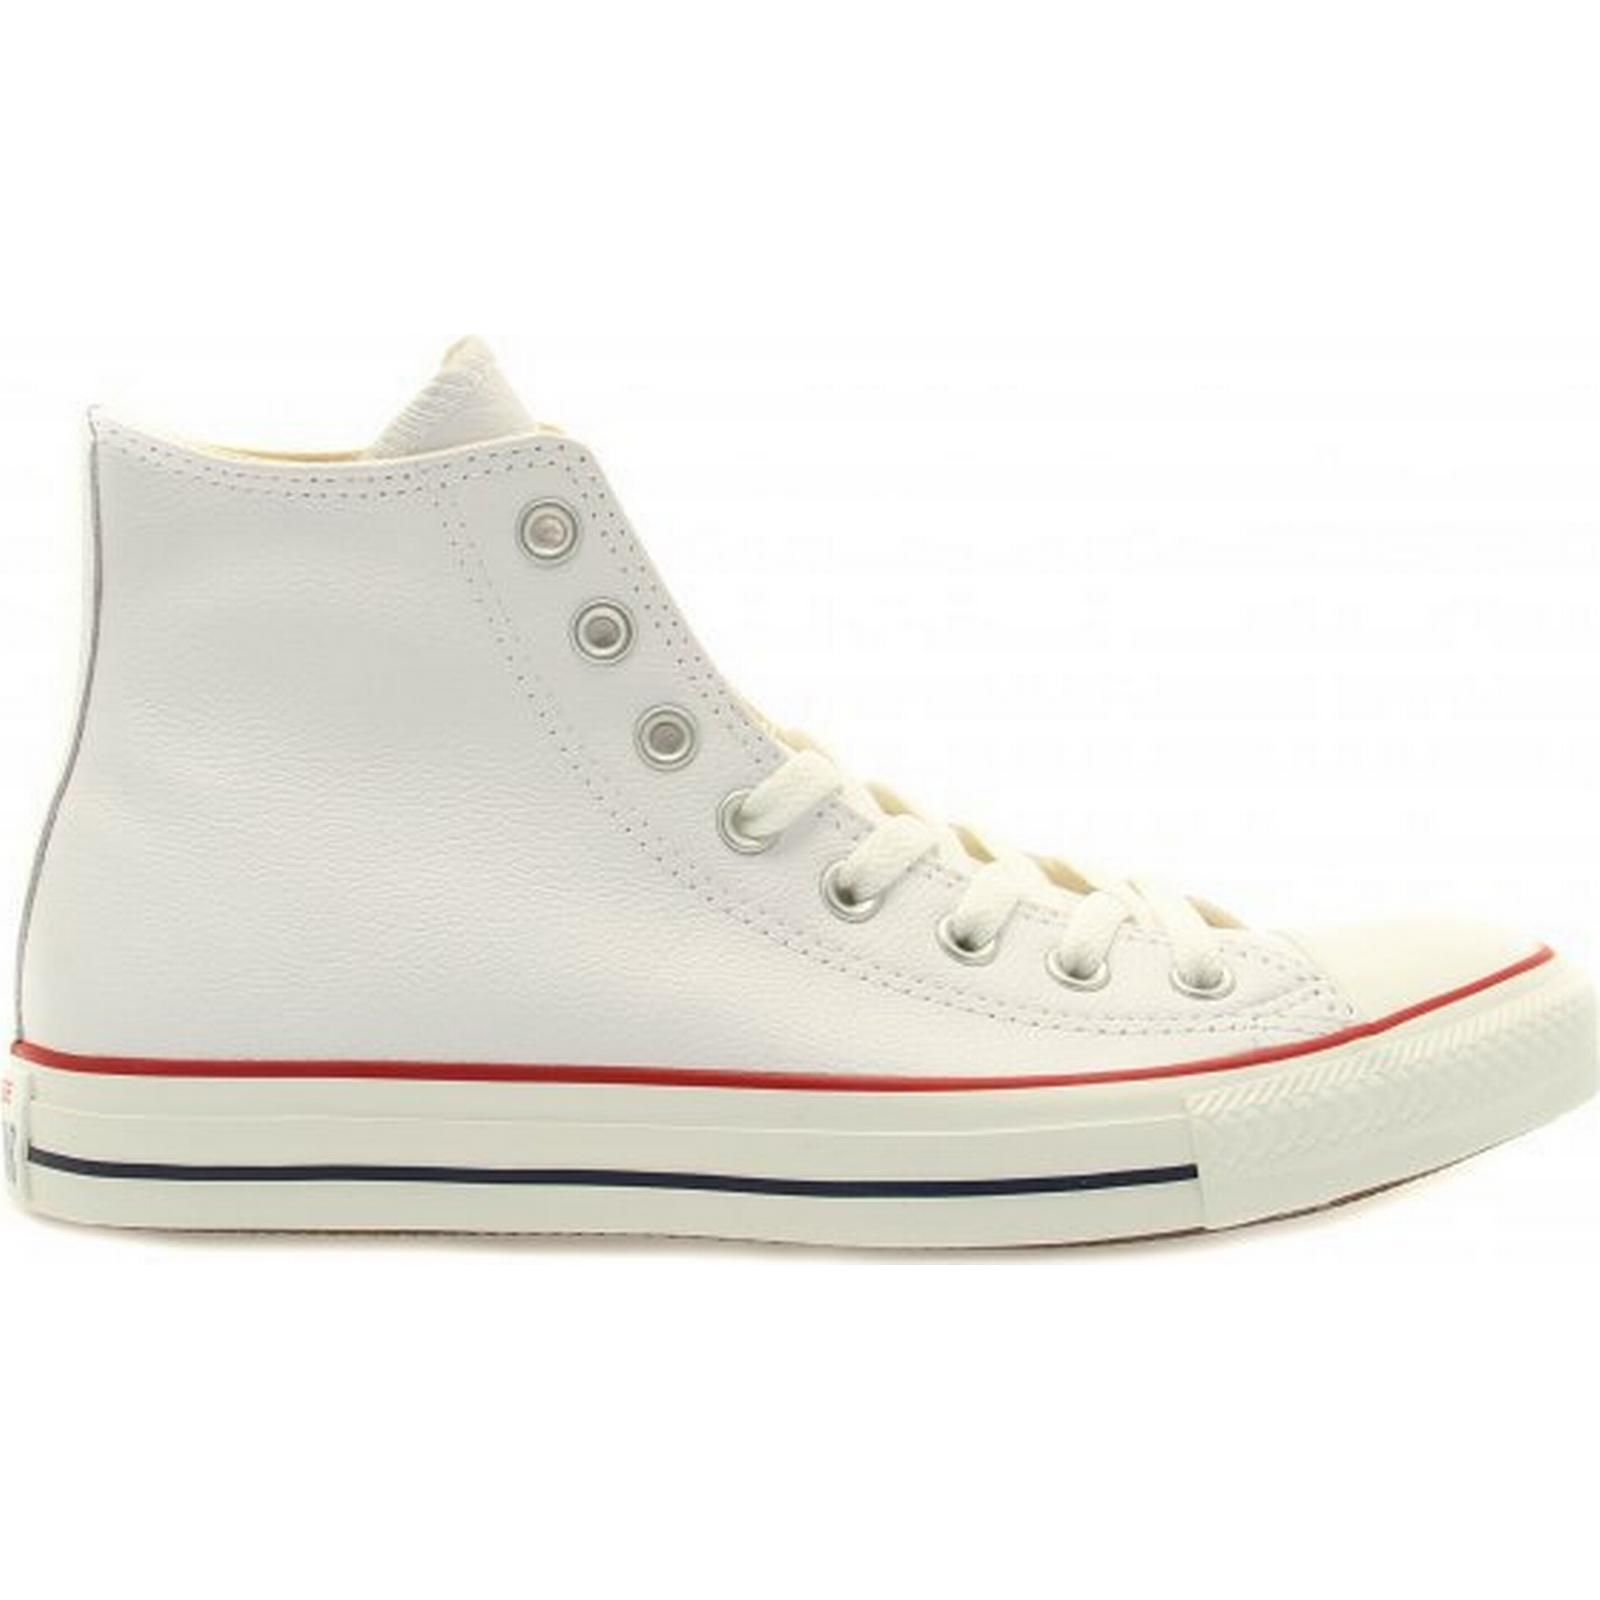 Converse White Leather Chuck Taylor All Star Size: Hi Size: Star 10 UK 3b1faa